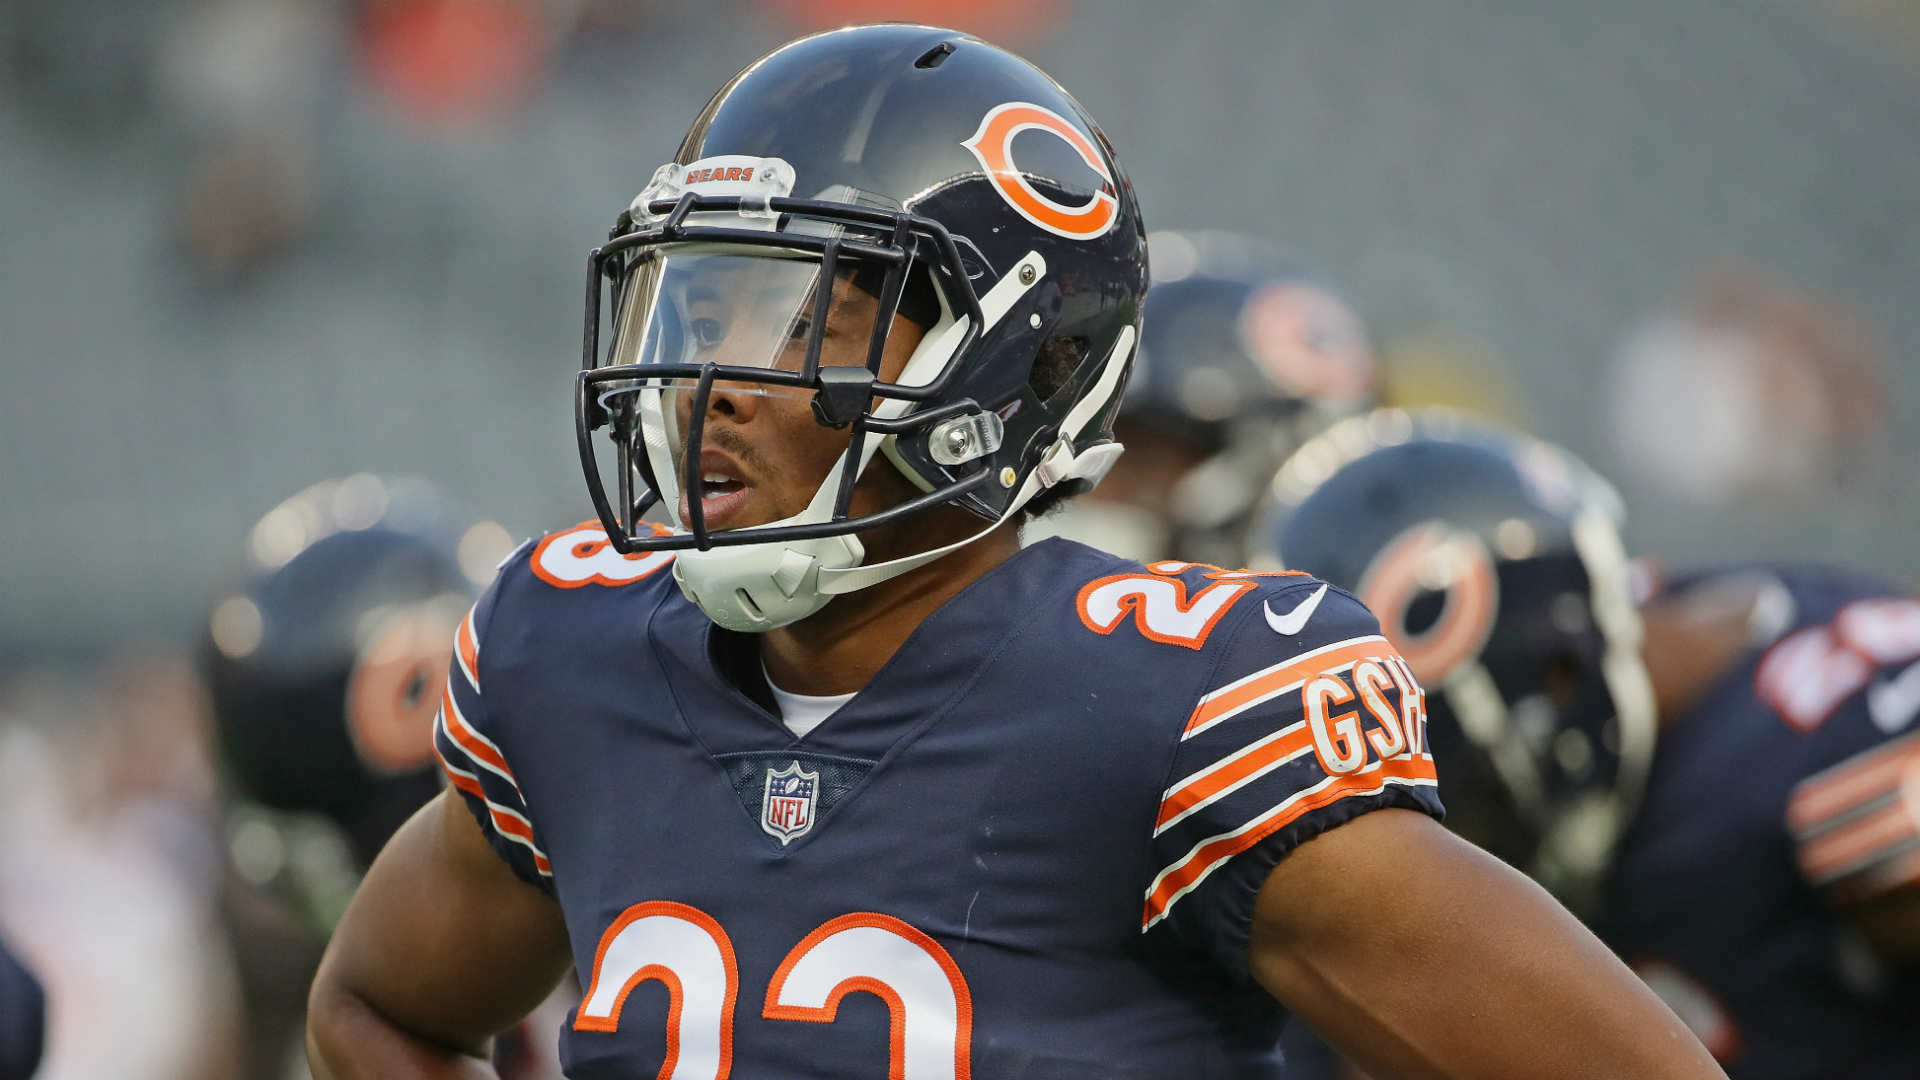 Bears CB Fuller signs offer sheet with Packers